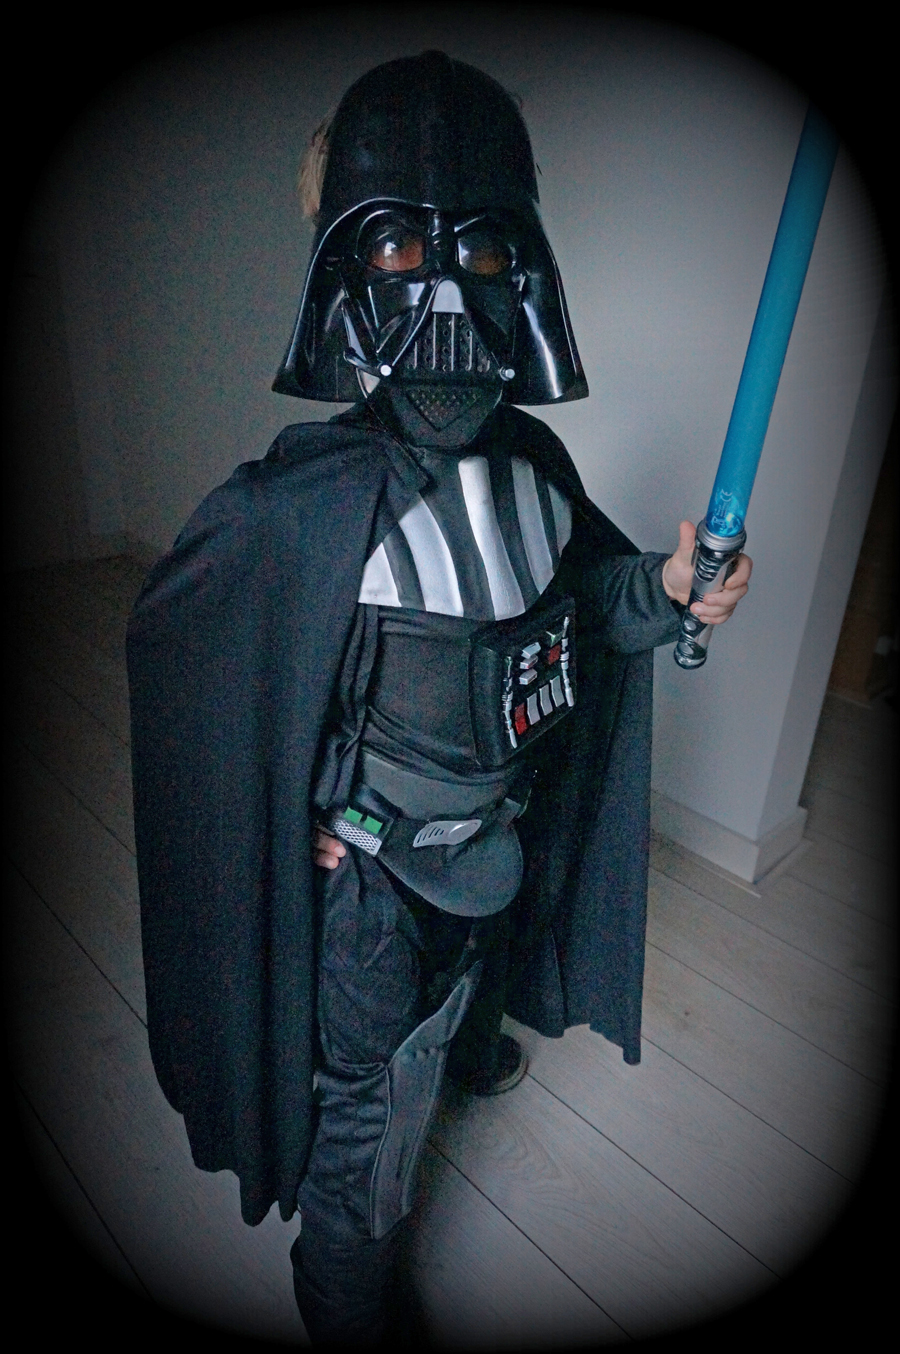 Star wars kostuum, star wars carnavals kleding, darth vader